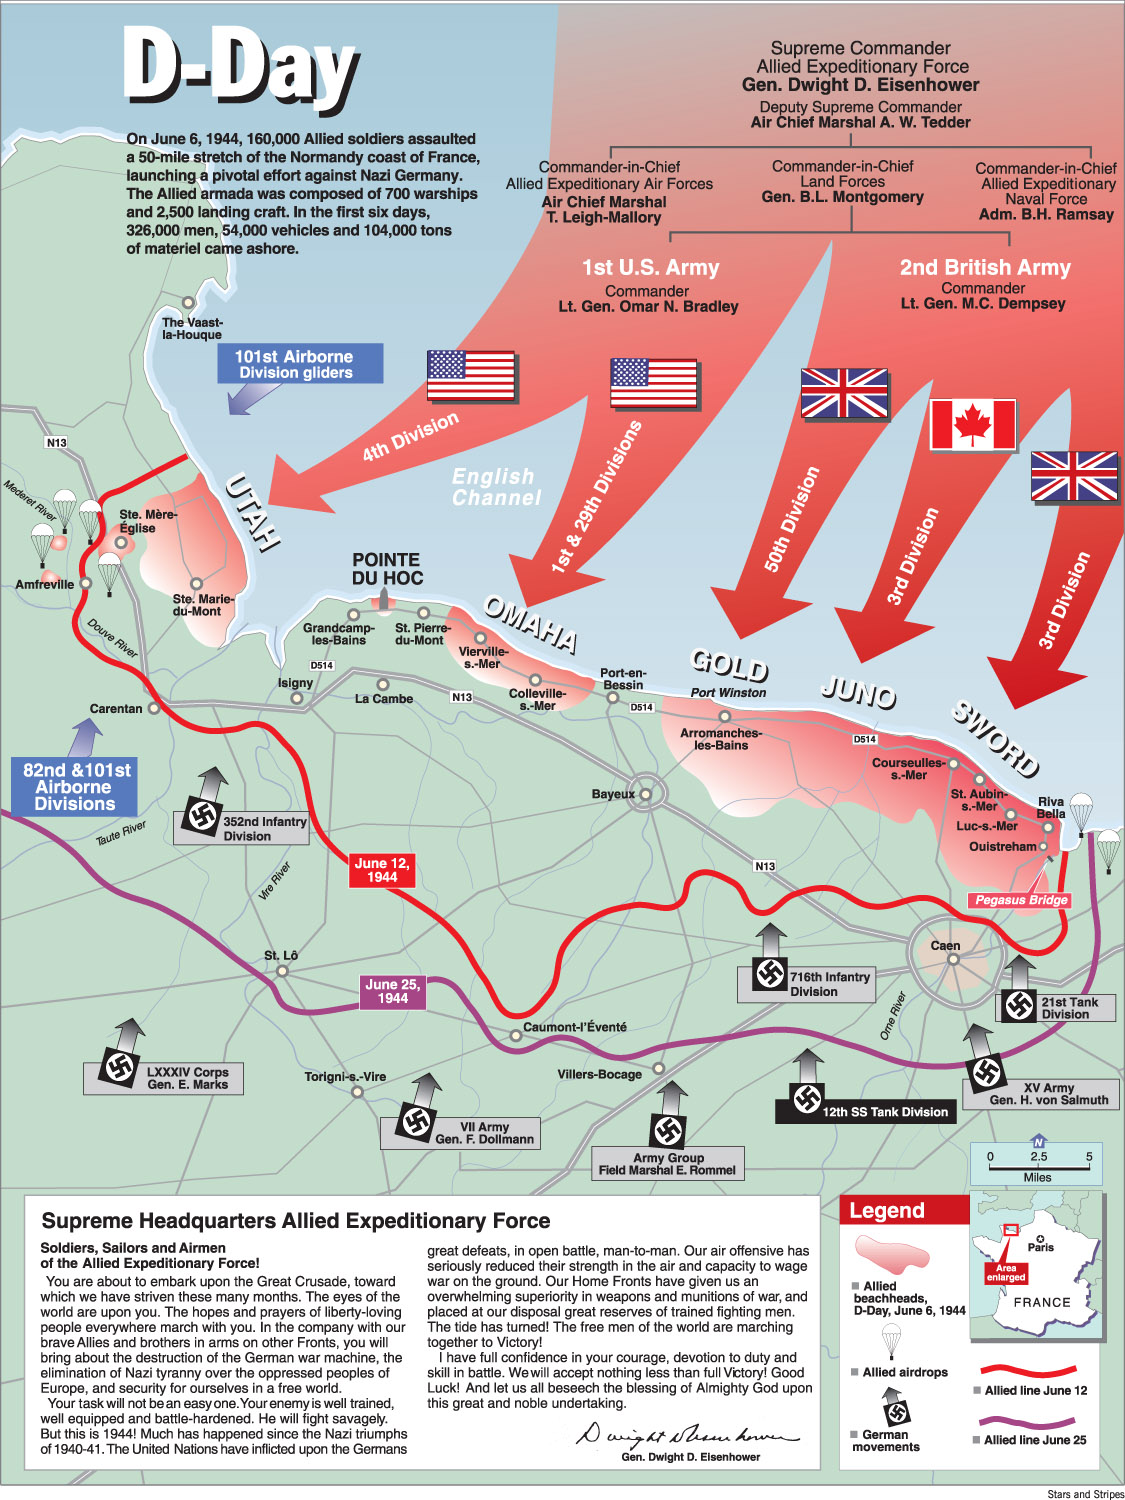 D-Day map Latest version - FotoDesign Winkler on